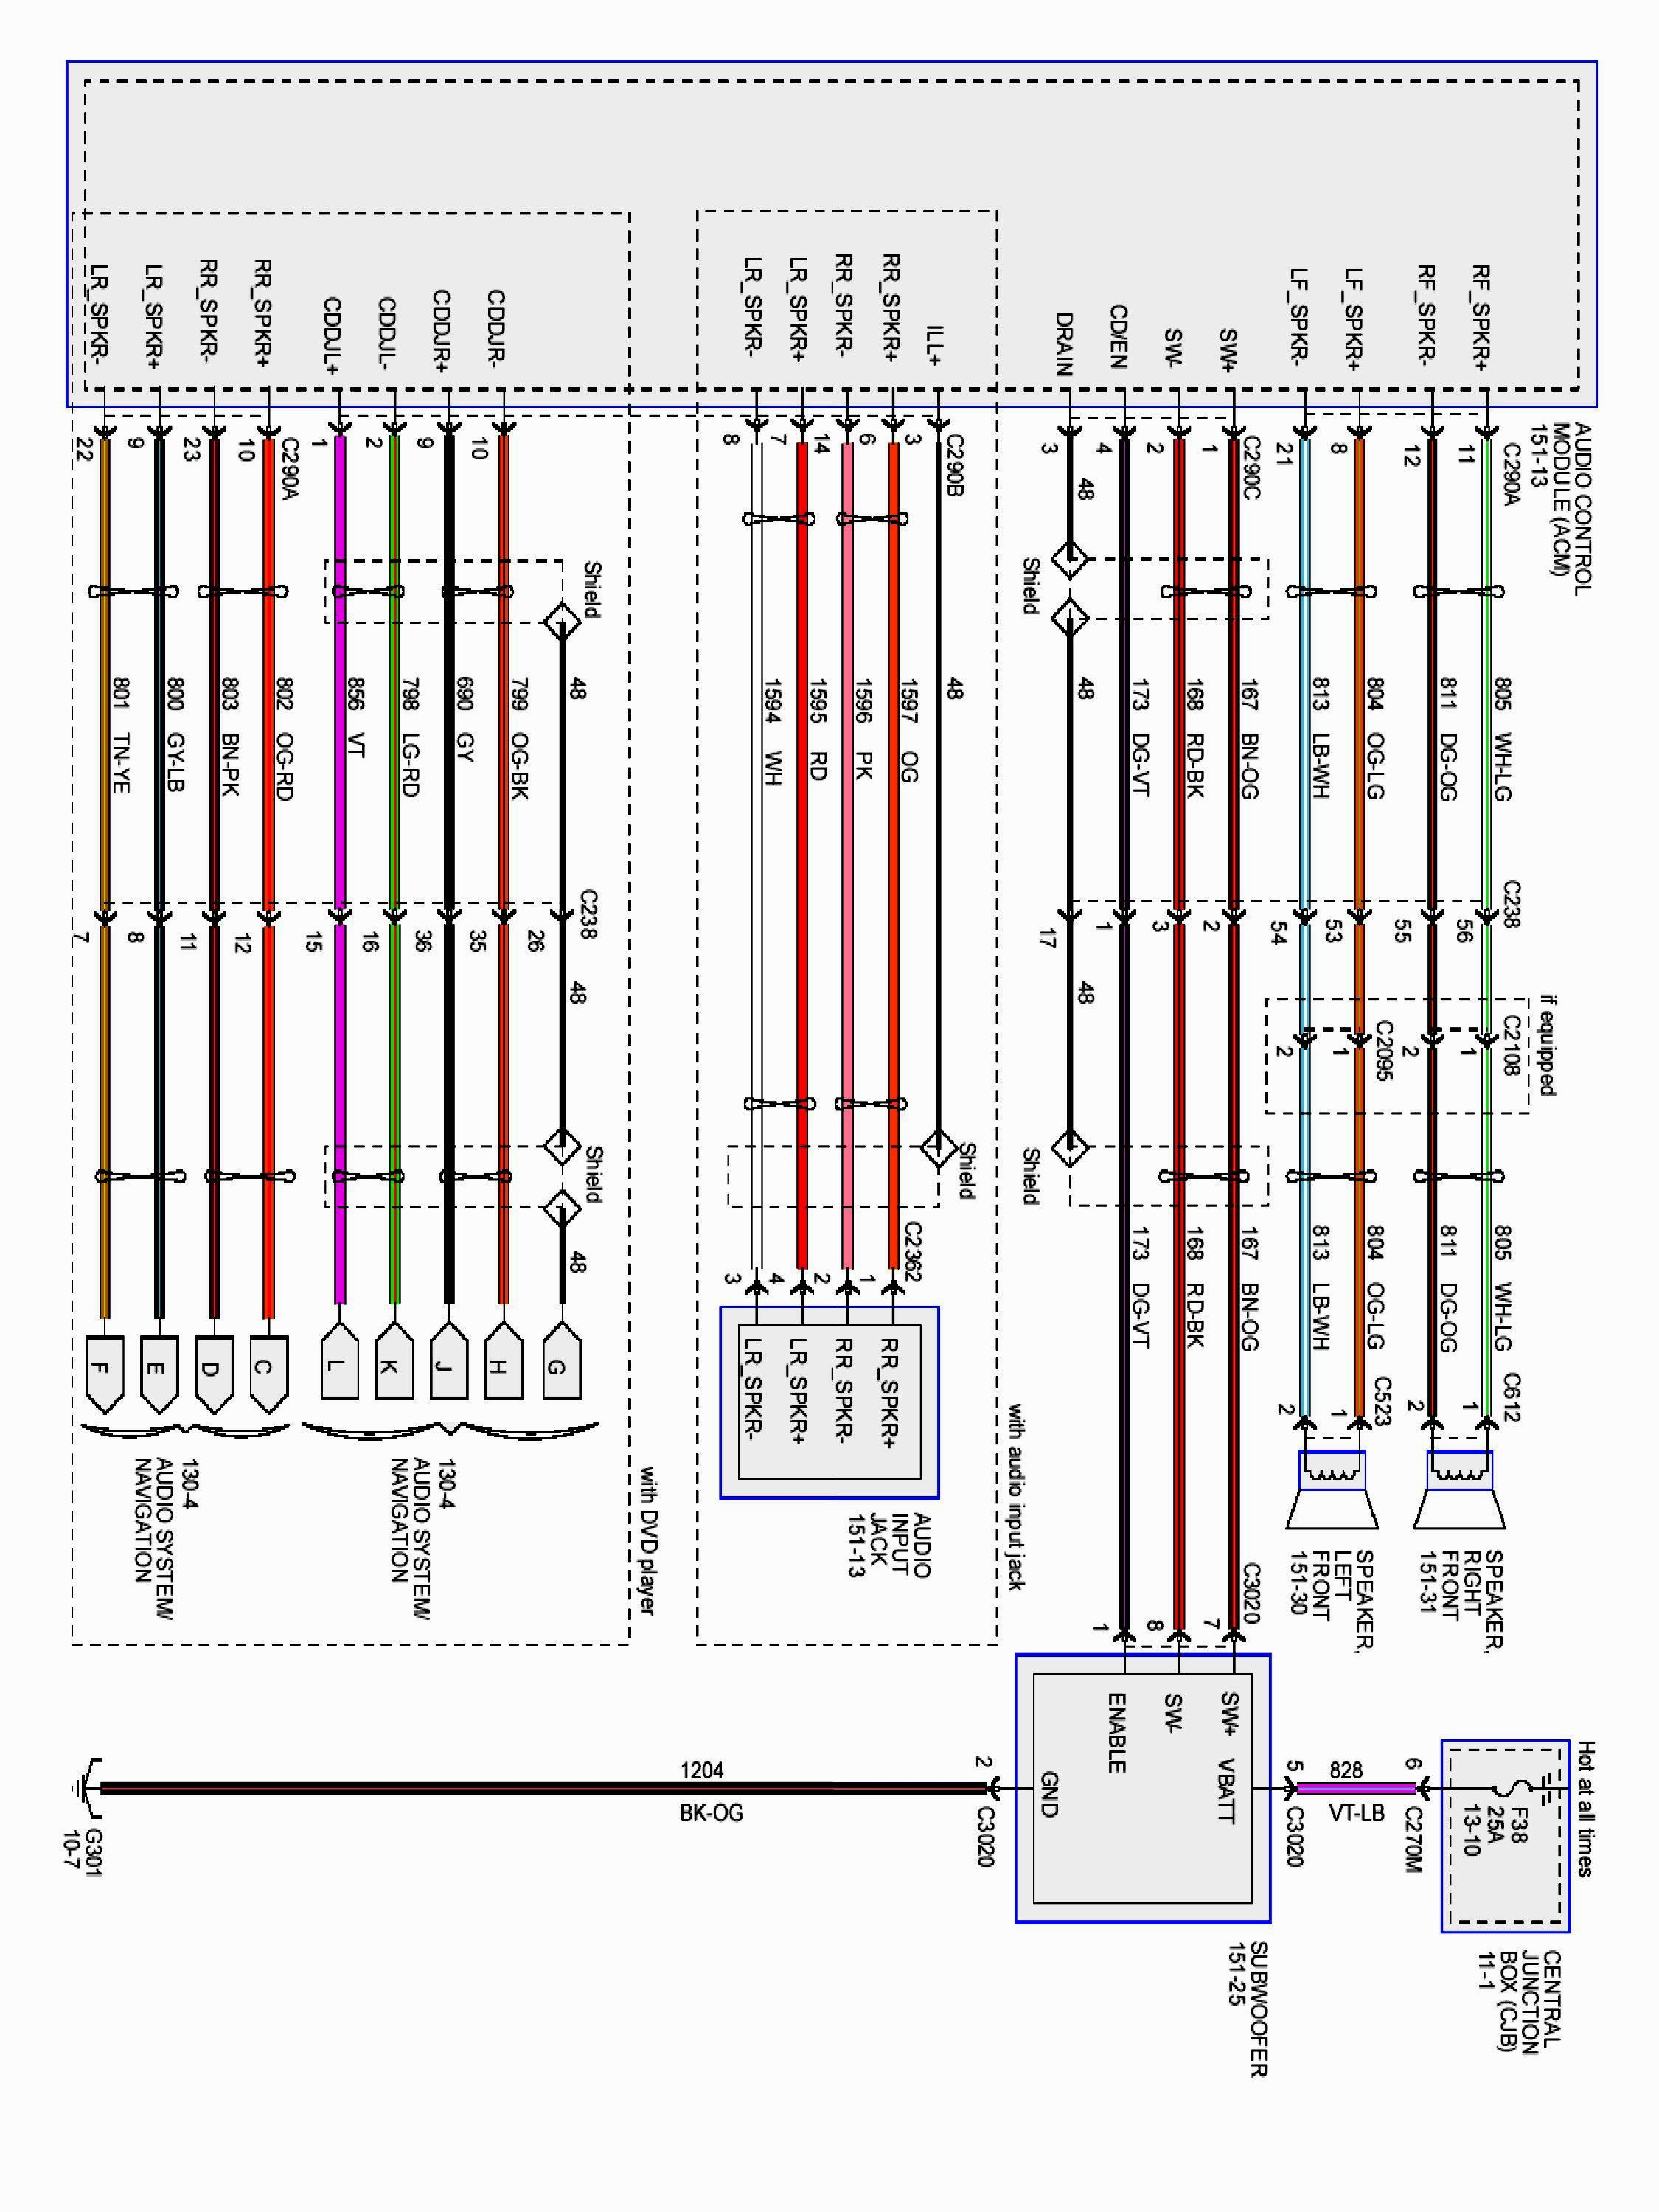 2004 Ford F150 Stereo Wiring Diagram from i.pinimg.com